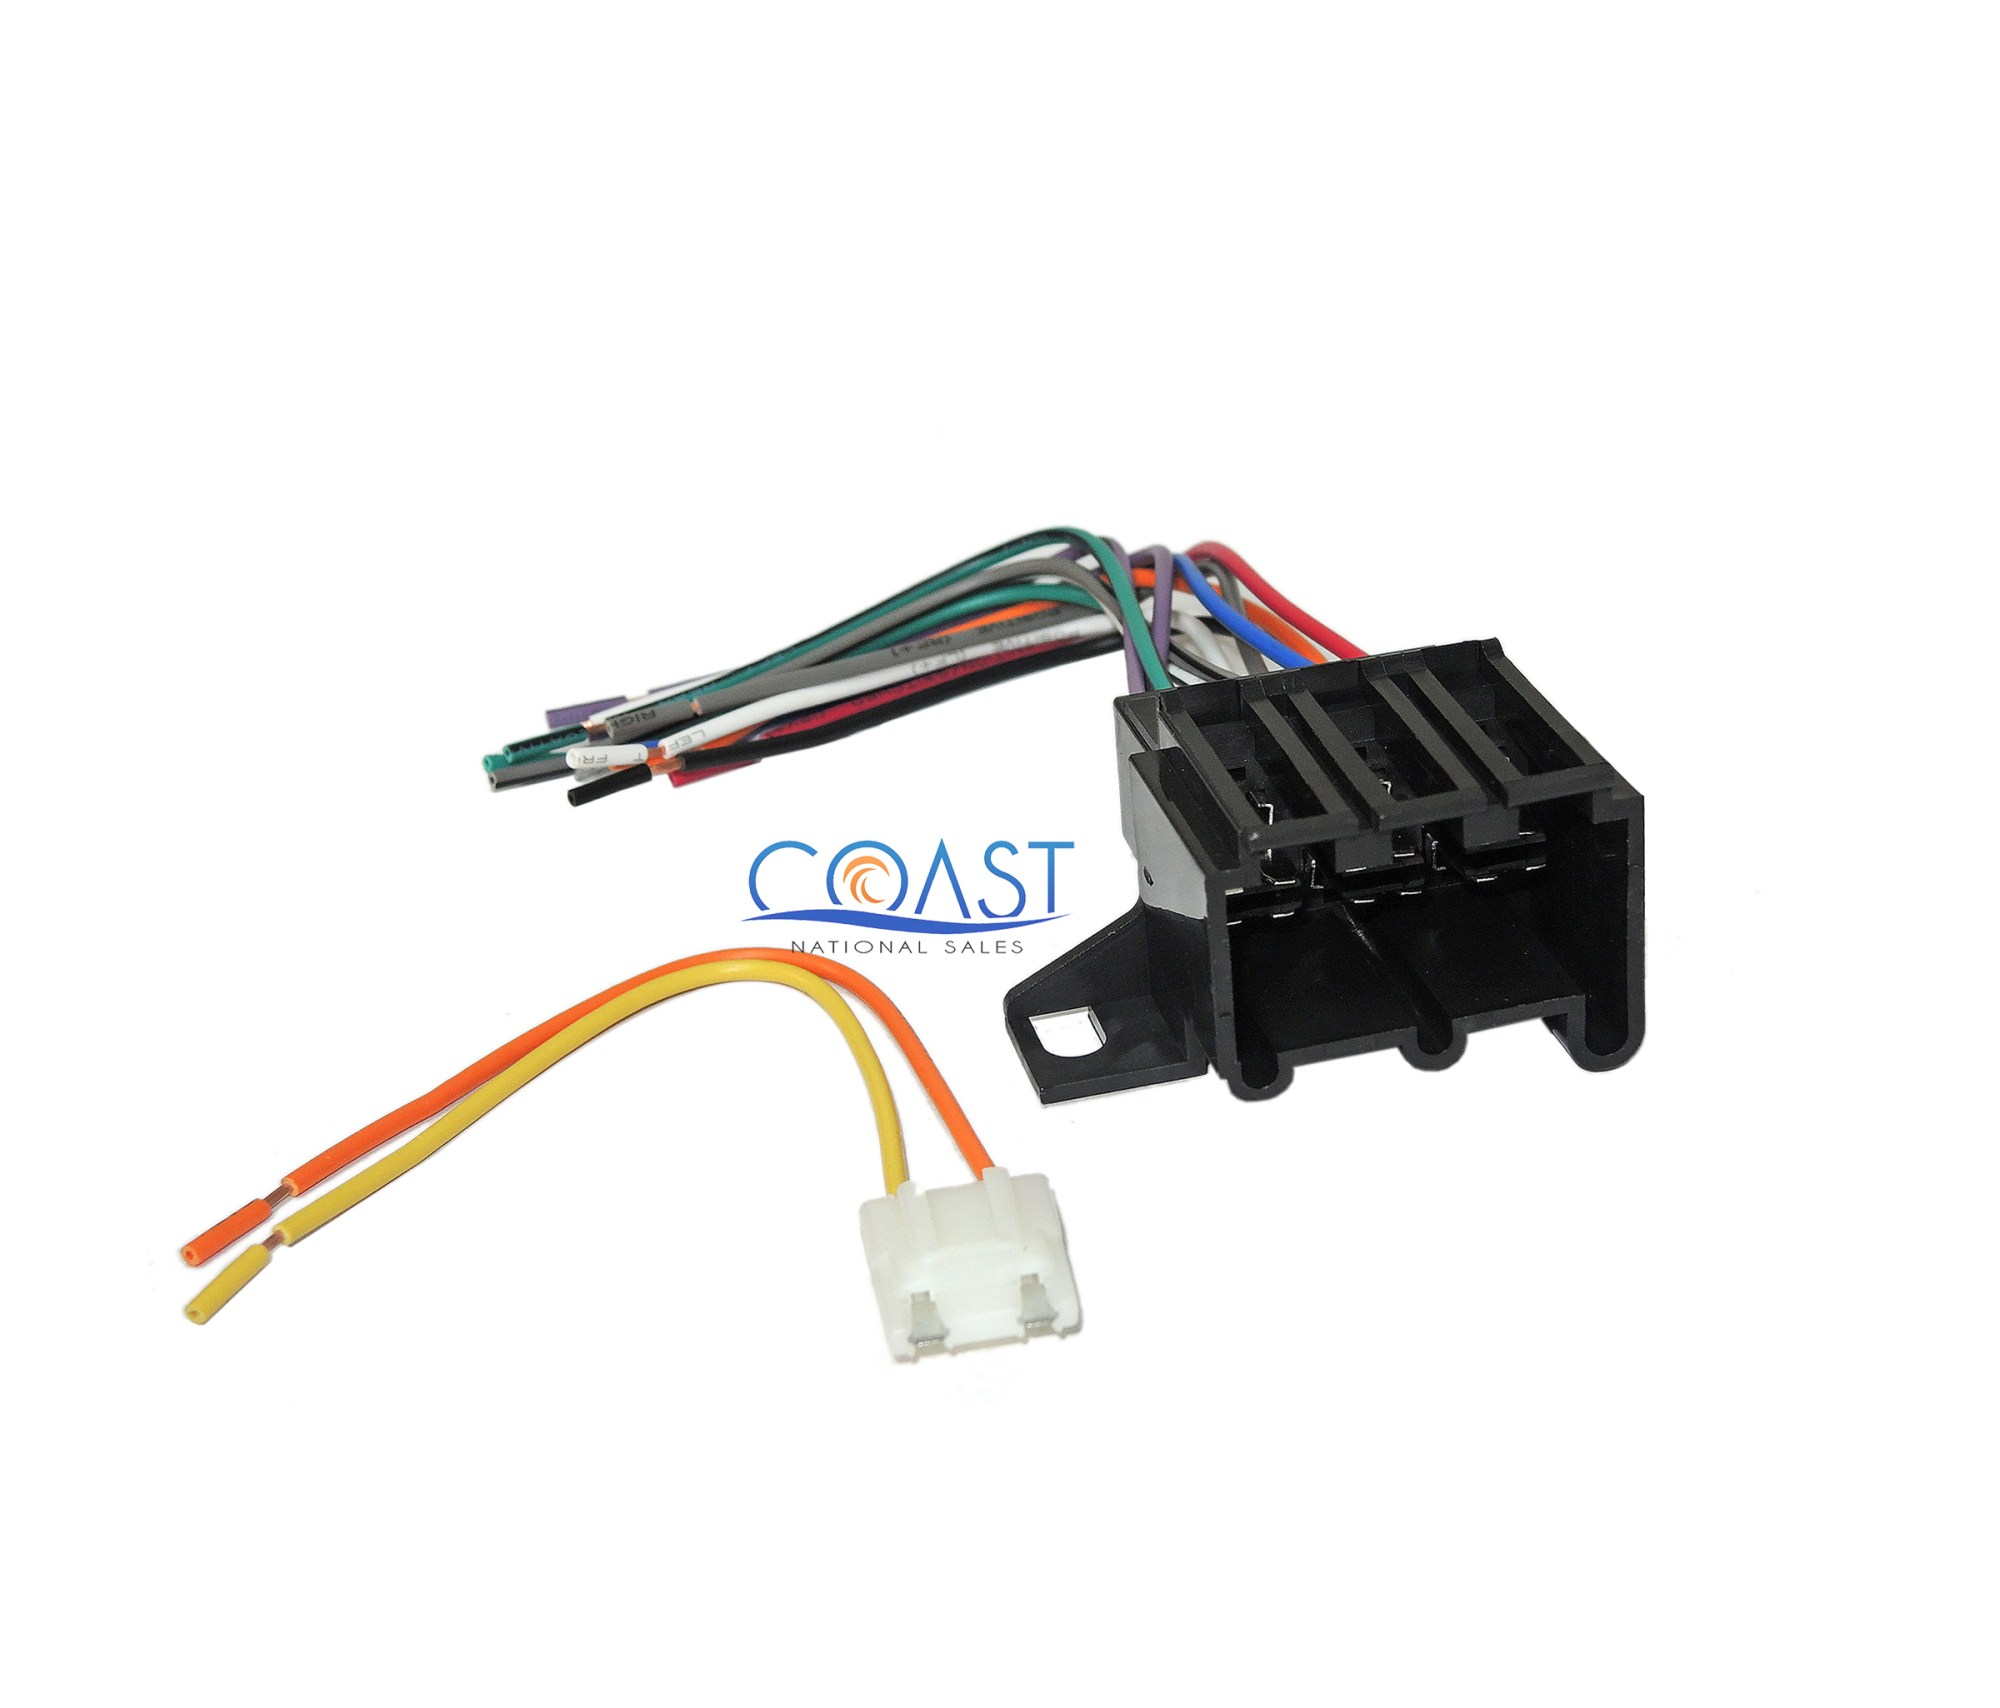 hight resolution of car radio stereo wire harness for 1973 up chevrolet buick cadillac gmc pontiac